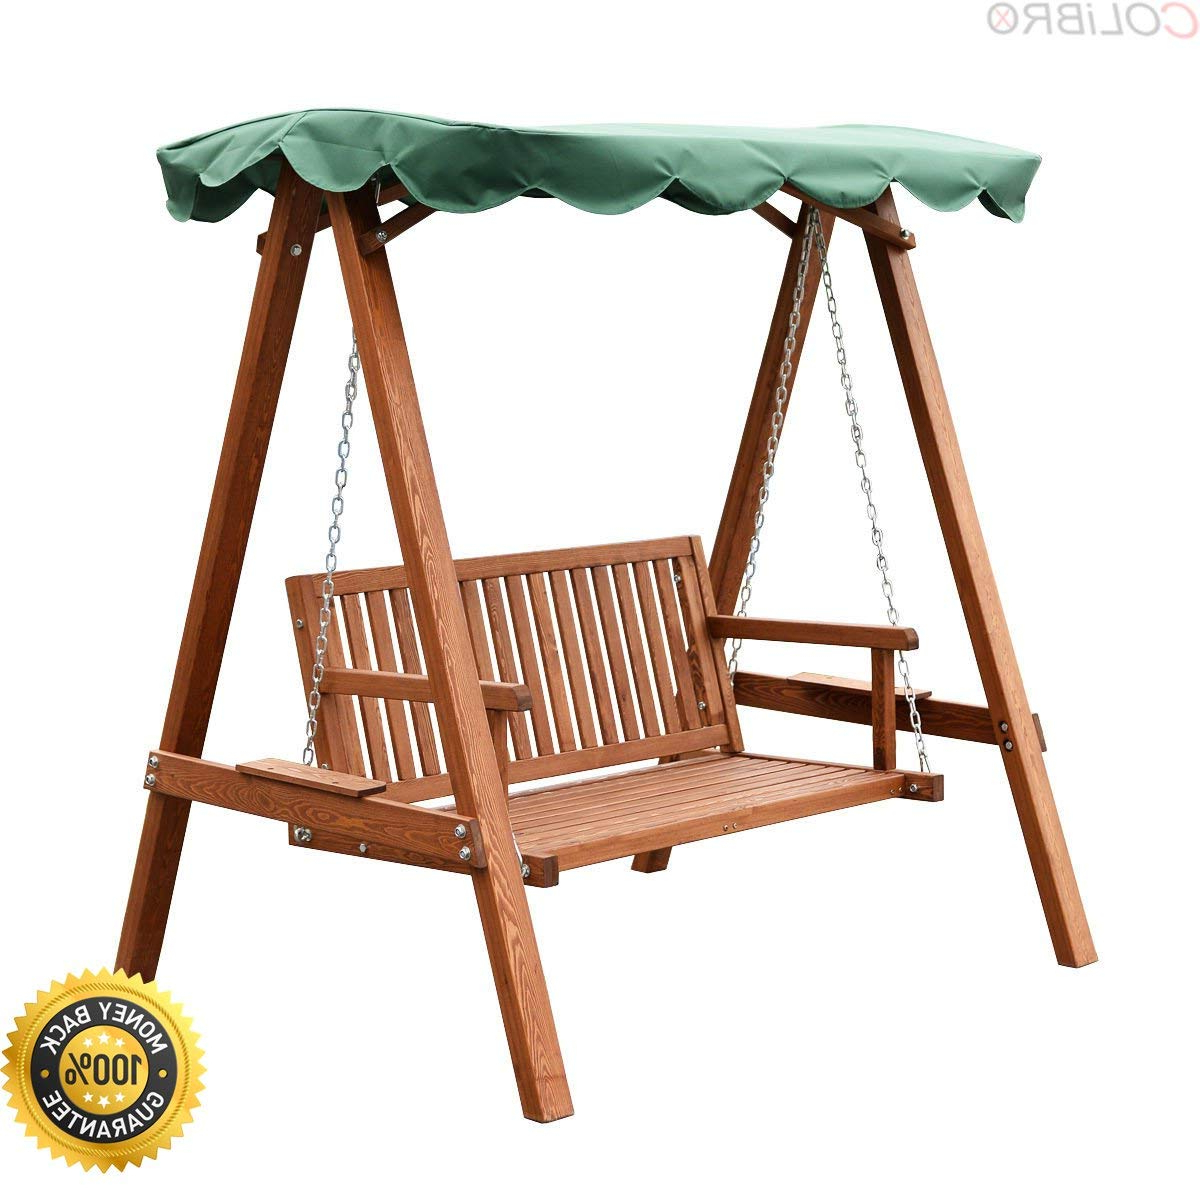 Popular Cheap Wooden Garden Swing Seats Outdoor Furniture, Find Intended For 3 Person Light Teak Oil Wood Outdoor Swings (View 20 of 30)